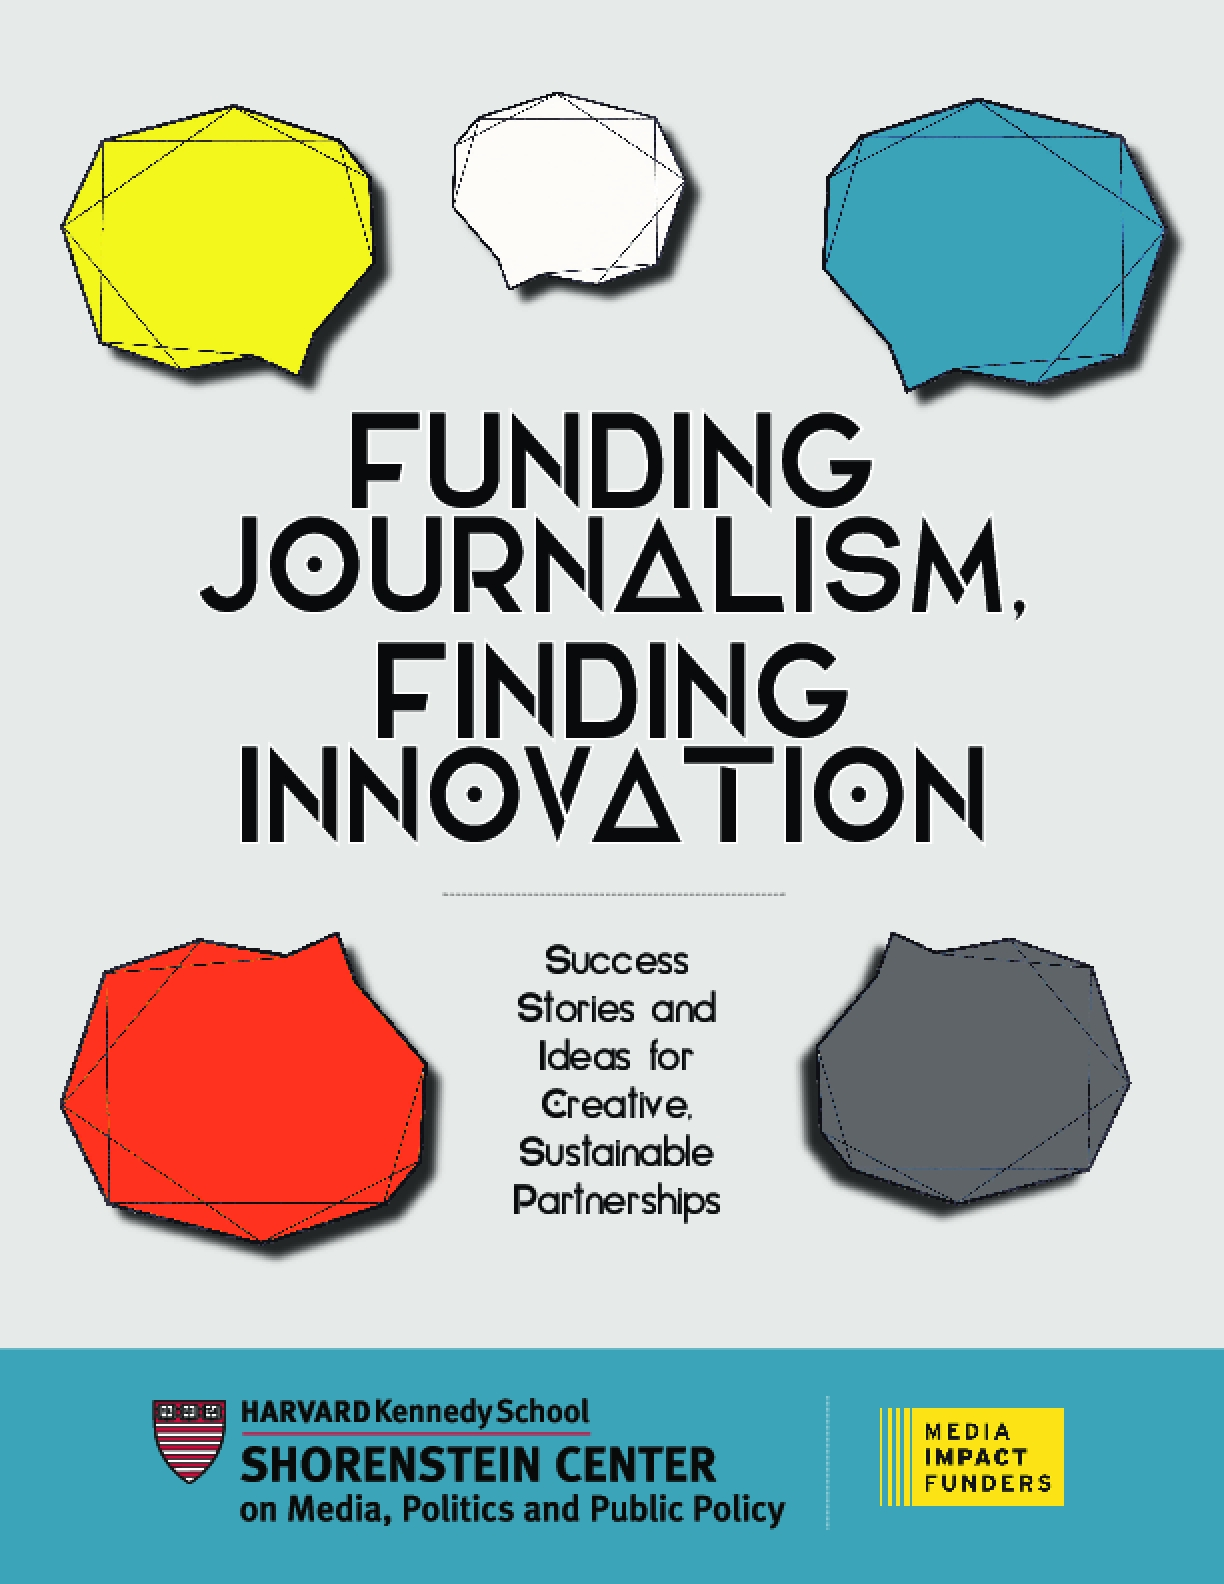 Funding Journalism, Finding Innovation: Success Stories and Ideas for Creative, Sustainable Partnerships